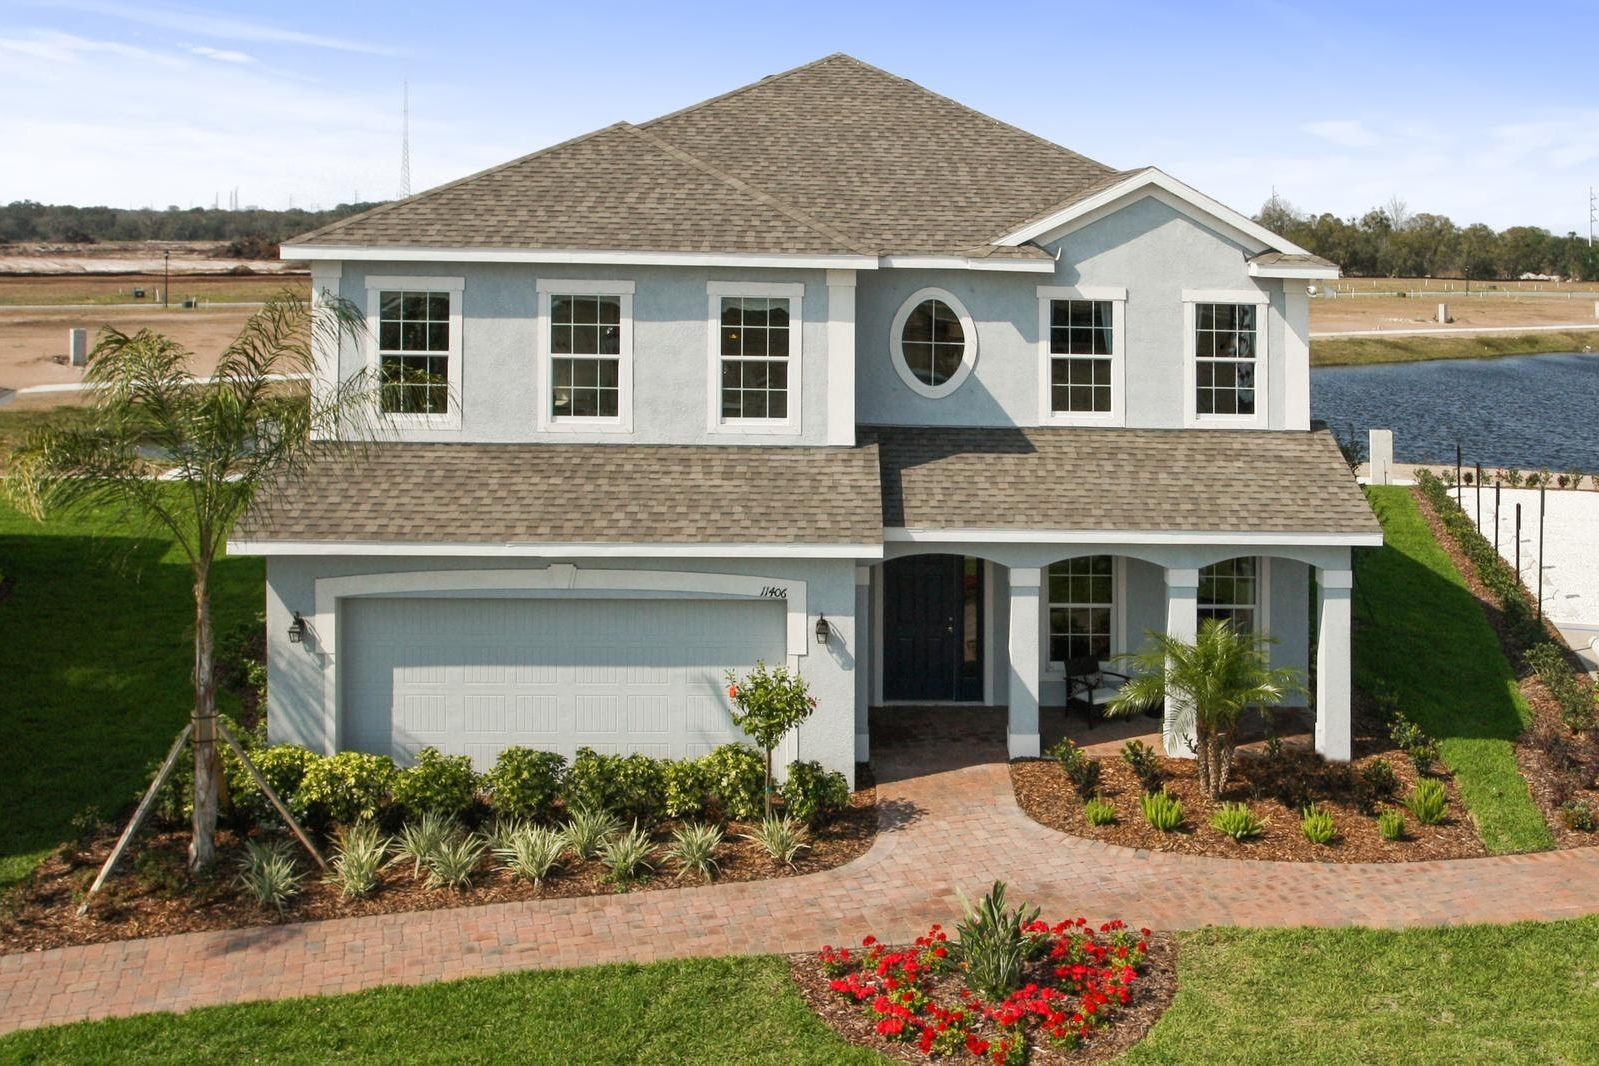 new homes for sale at southfork lakes in riverview fl within the